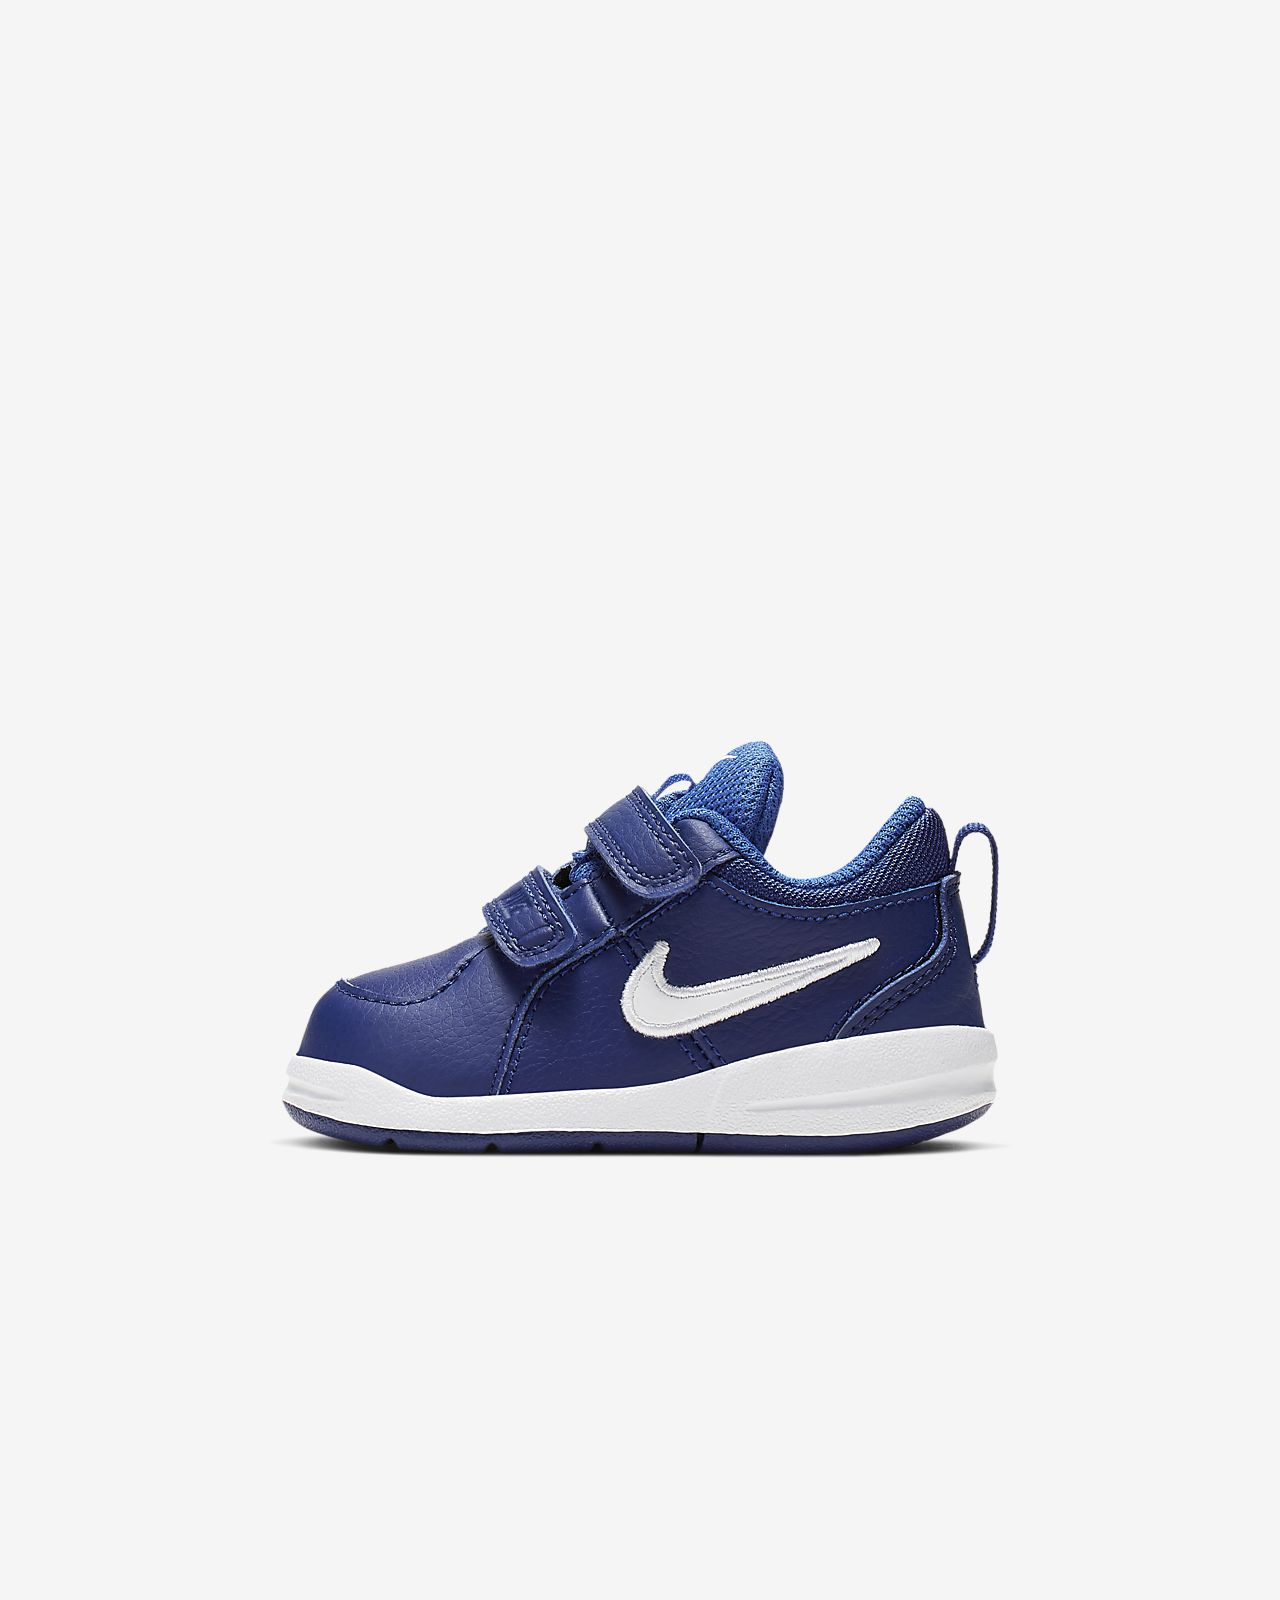 Nike Pico 4 Baby and Toddler Shoe